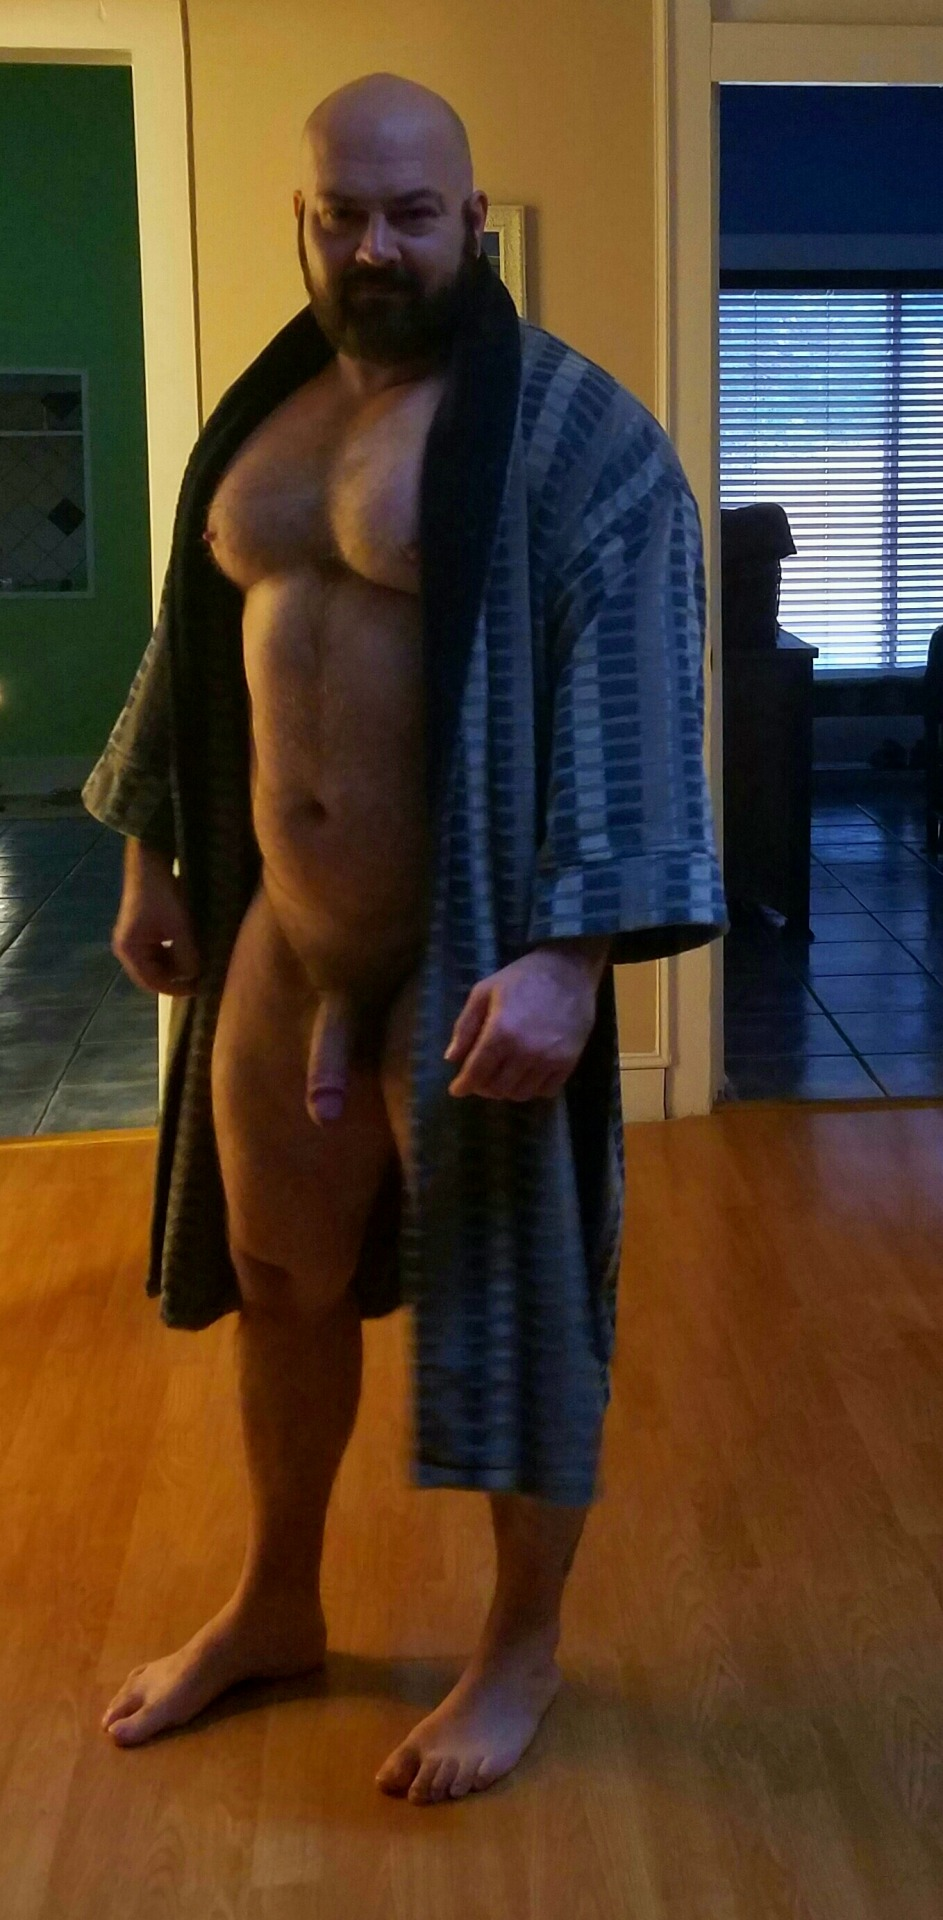 2018-06-06 16:16:57 - kirkdaddy d4d liked the robe his s0n bought for boylovesdaddybears http://www.neofic.com